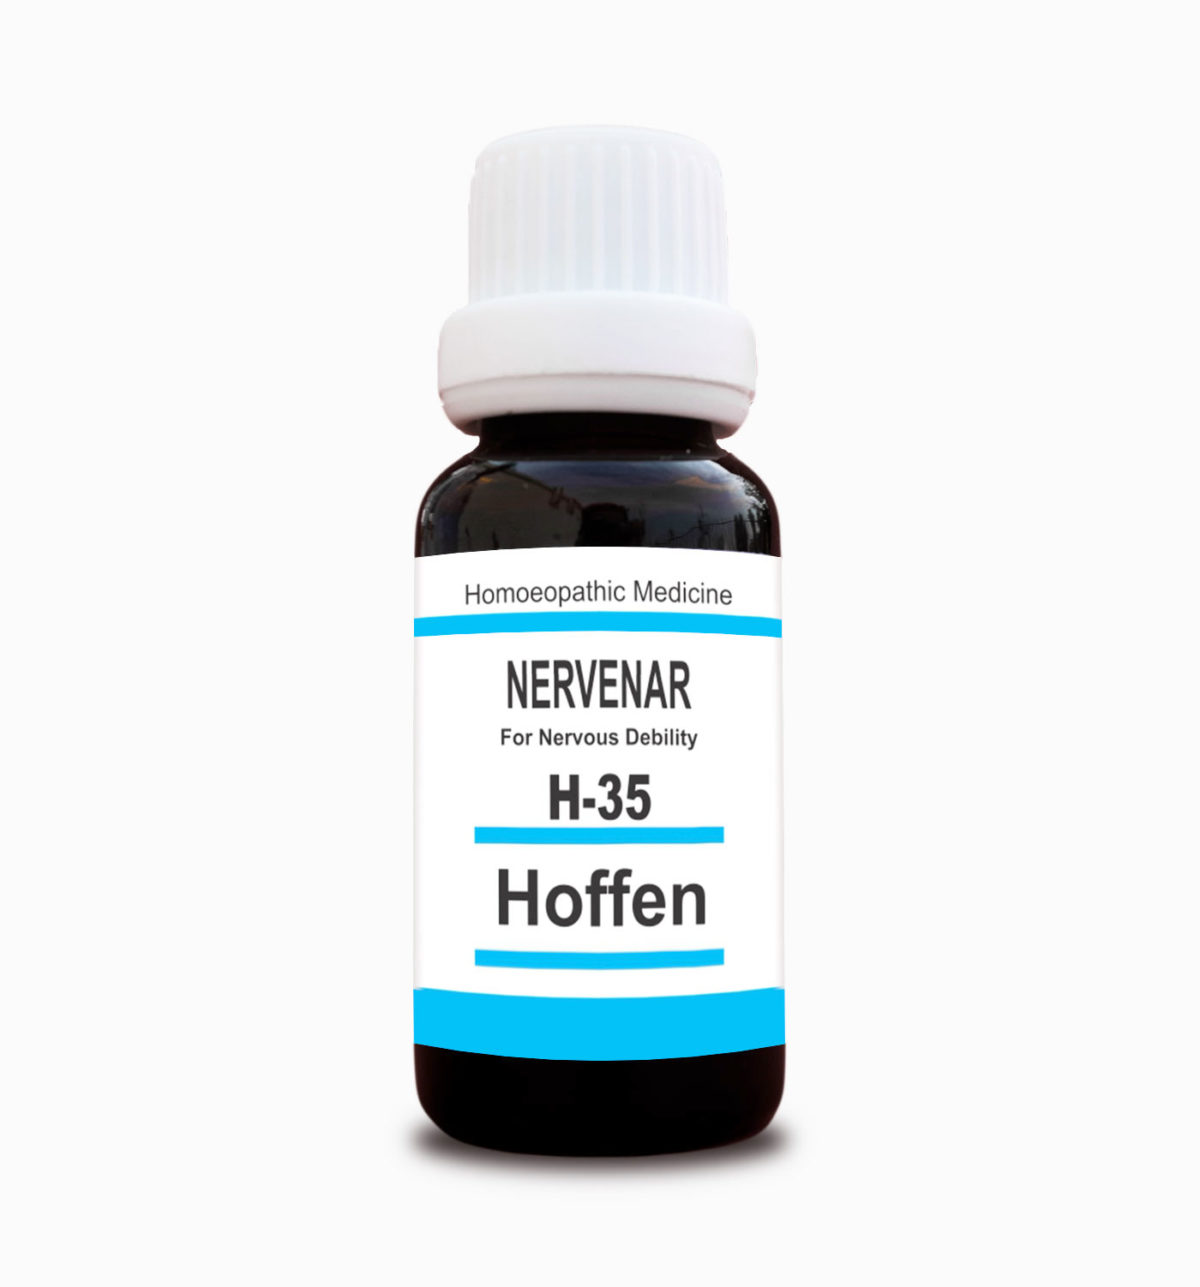 Homoeopathic preparation helpful for overcoming mental, physical and emotional exhaustion byrestoring proper organ function